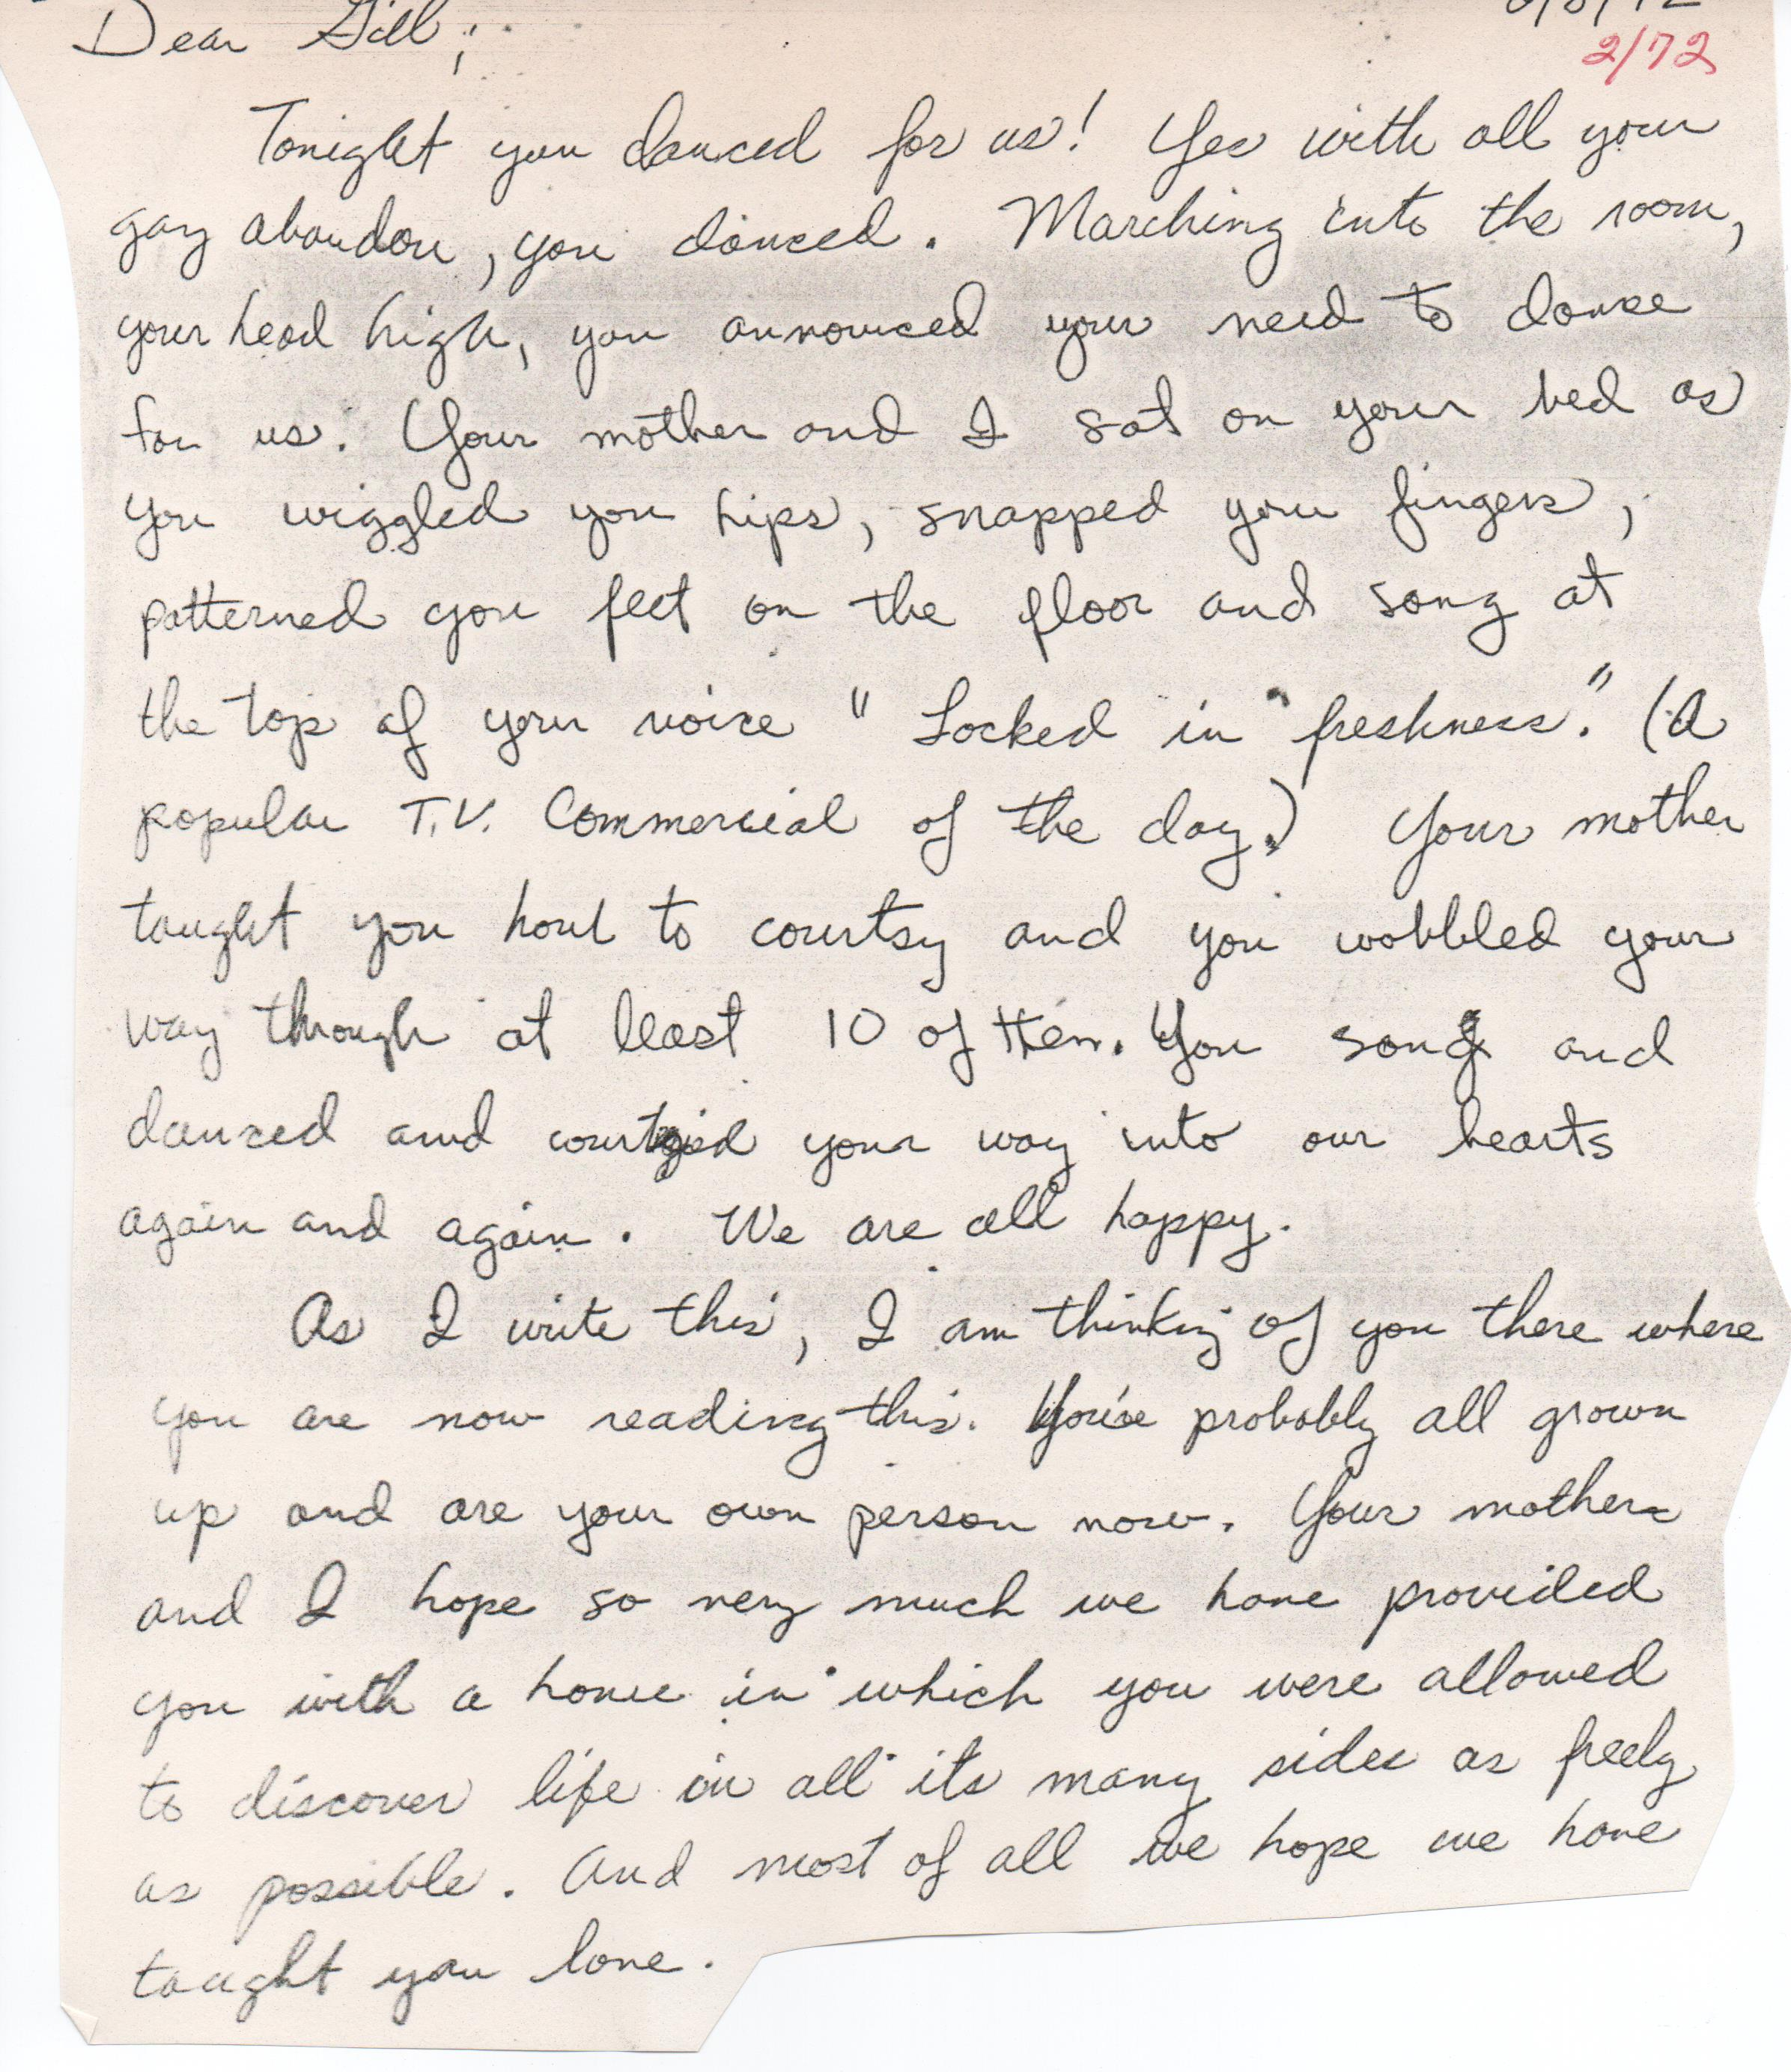 A letter to Gillian from her father, Larry Mahon